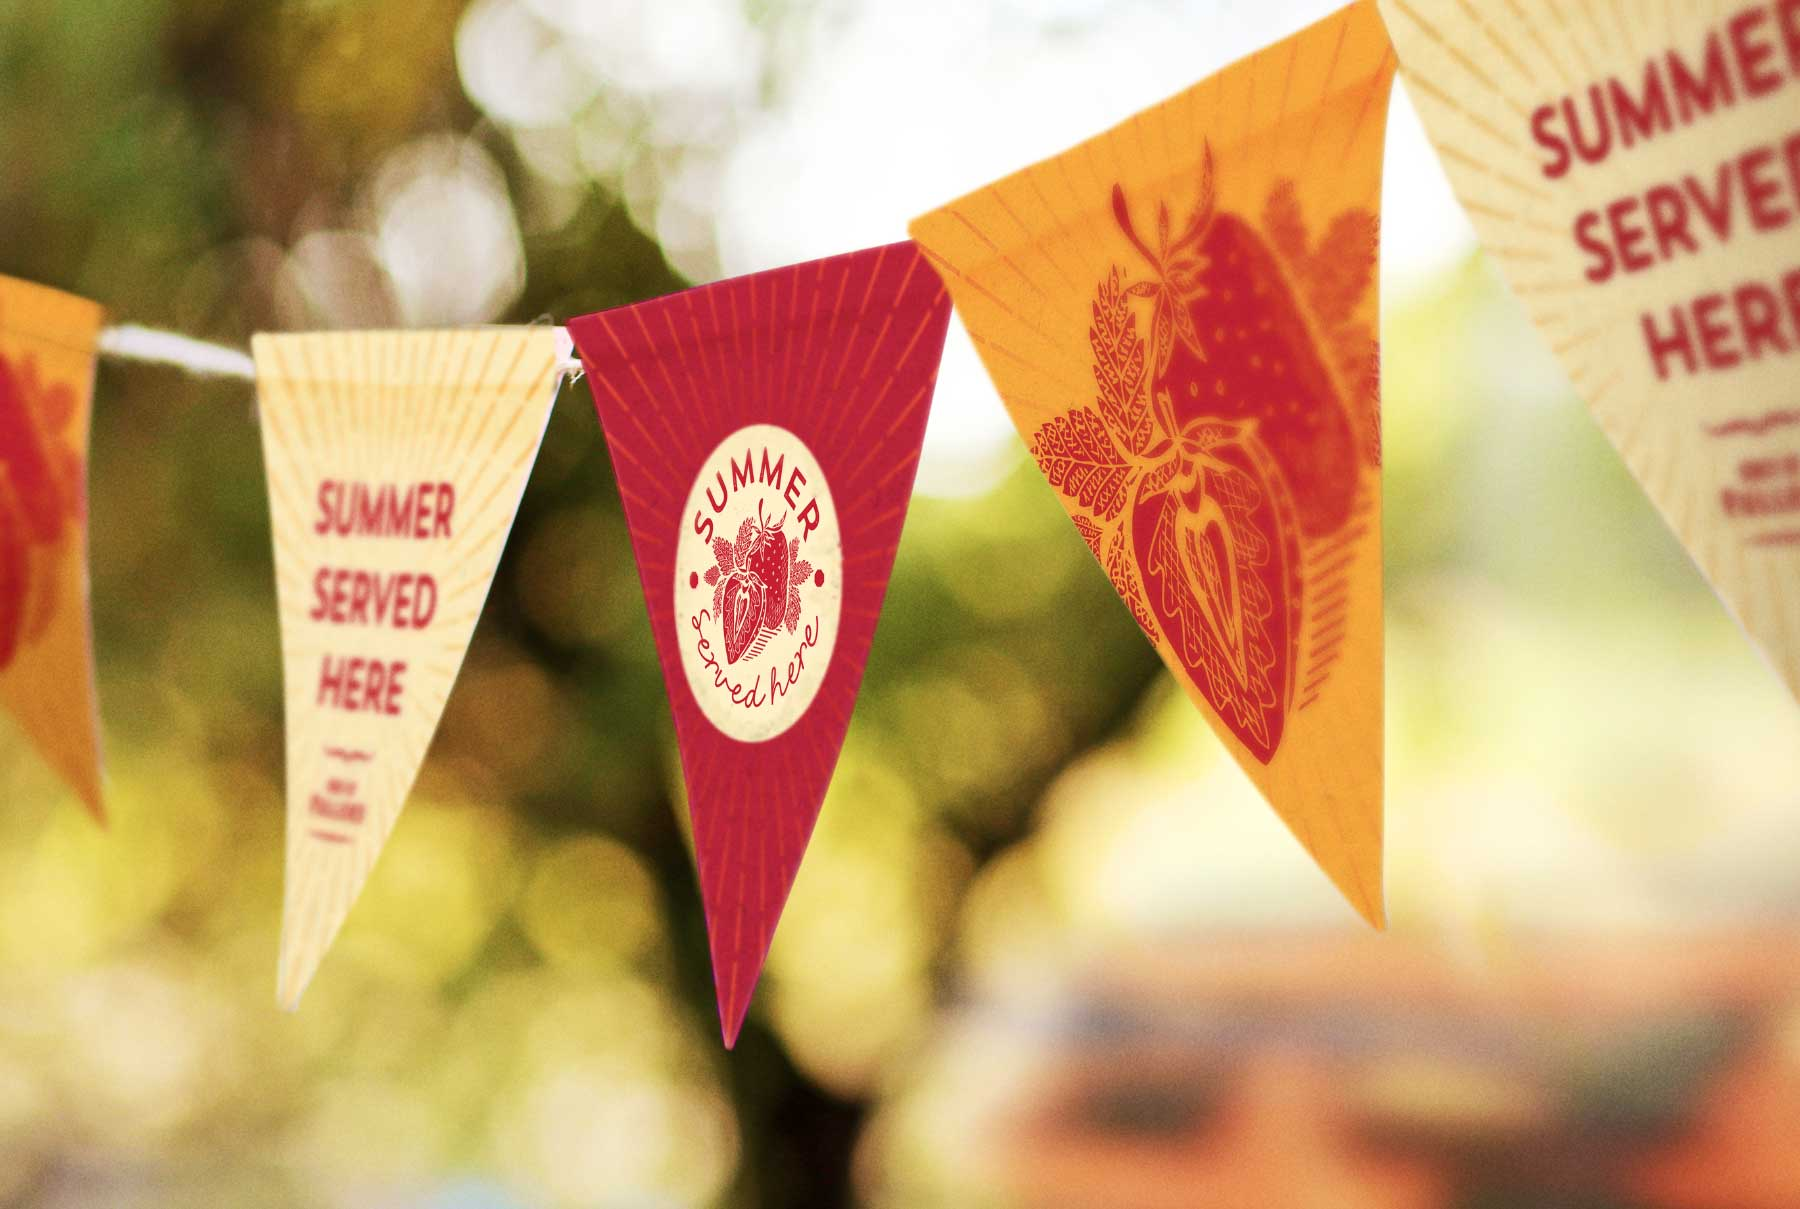 Fuller's Summer Served Here Bunting Design